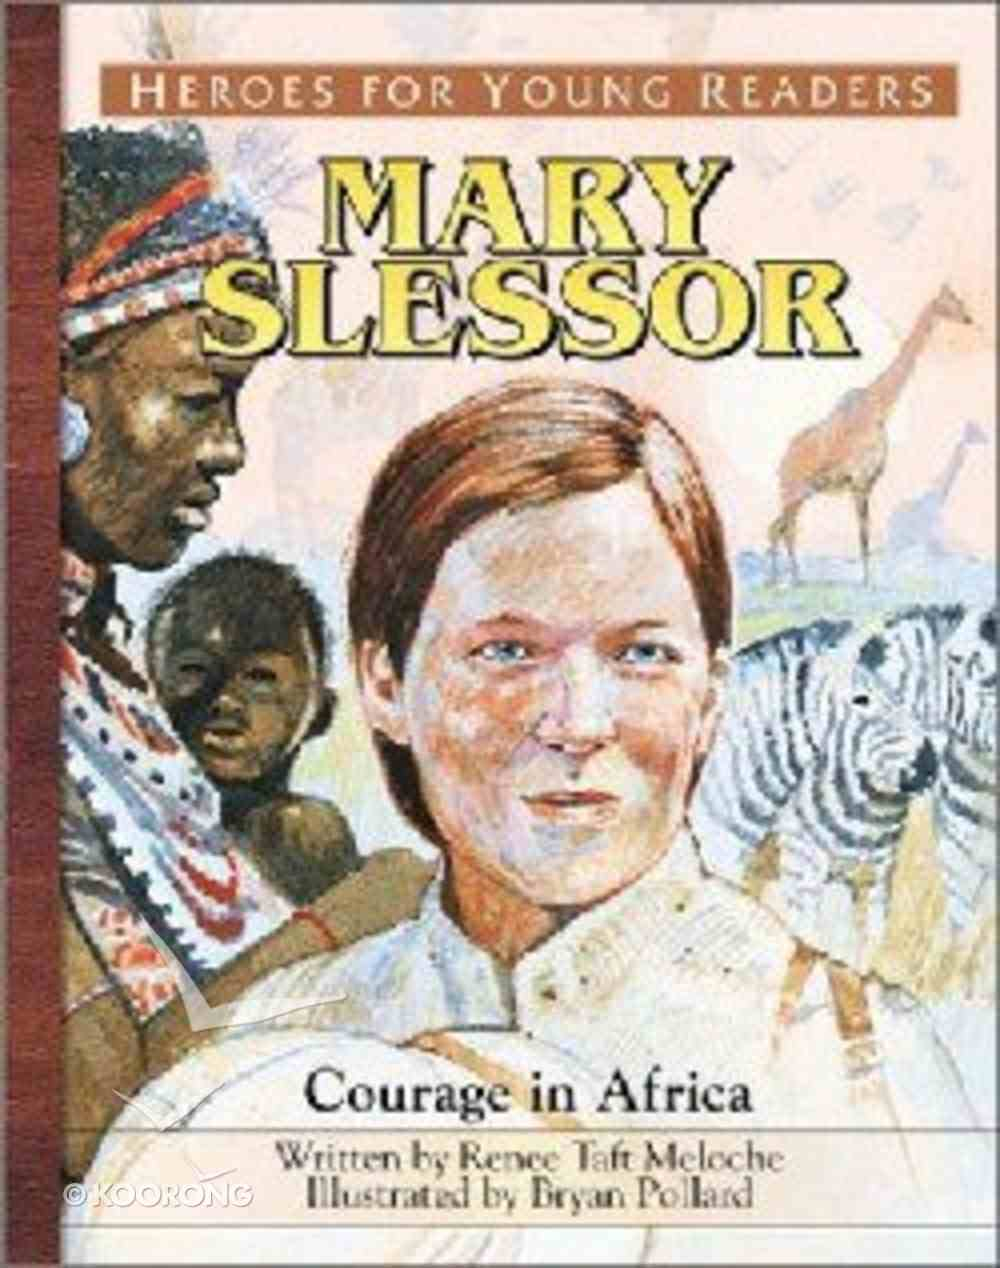 Mary Slessor - Courage in Africa (Heroes For Young Readers Series) Hardback